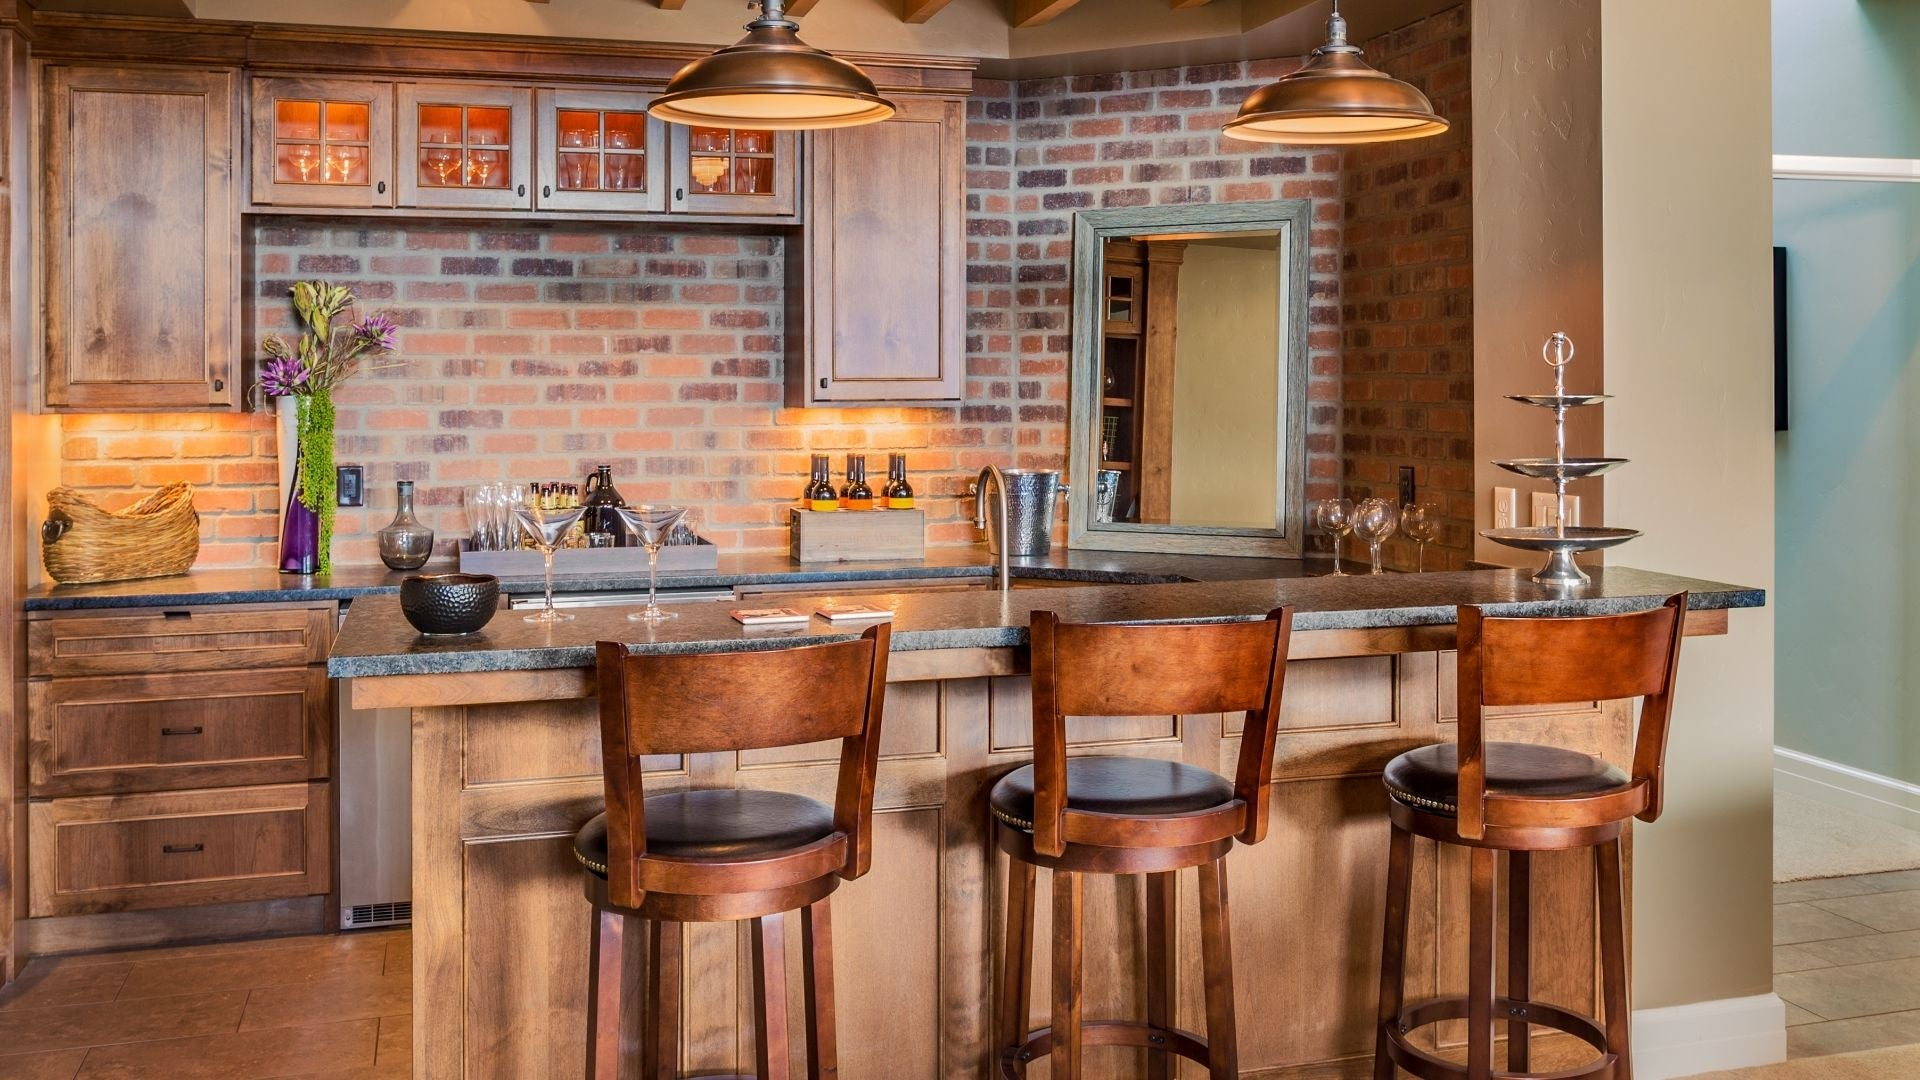 How to Build a DIY Home Bar: Step-by-Step Guide